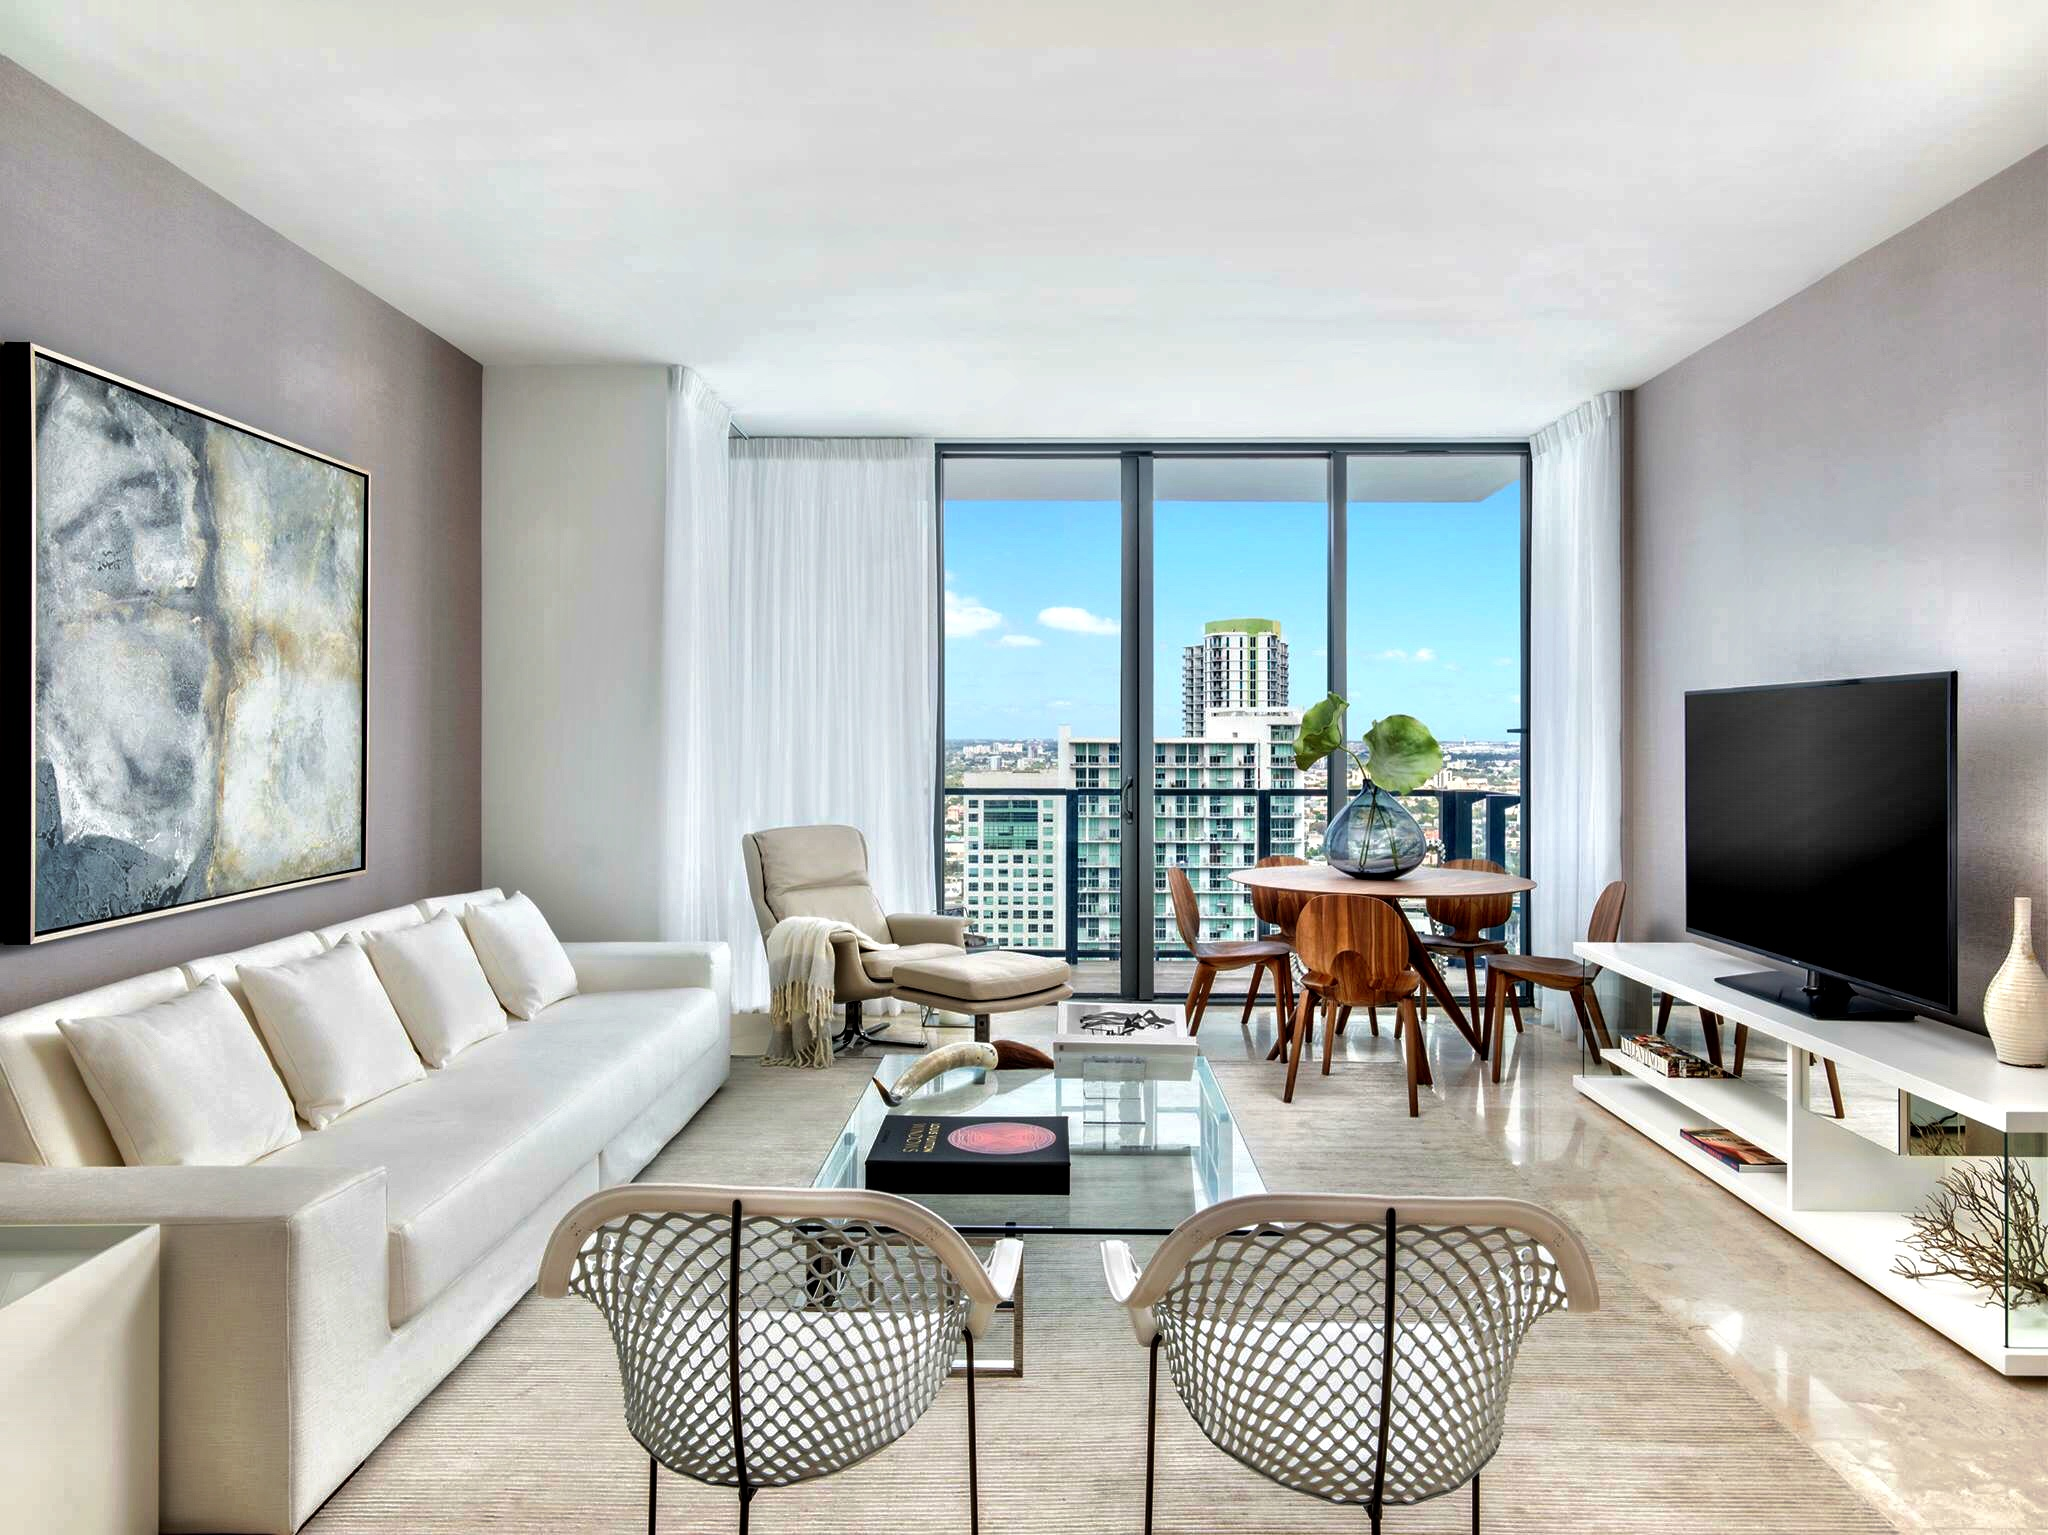 The shift from home living to condo